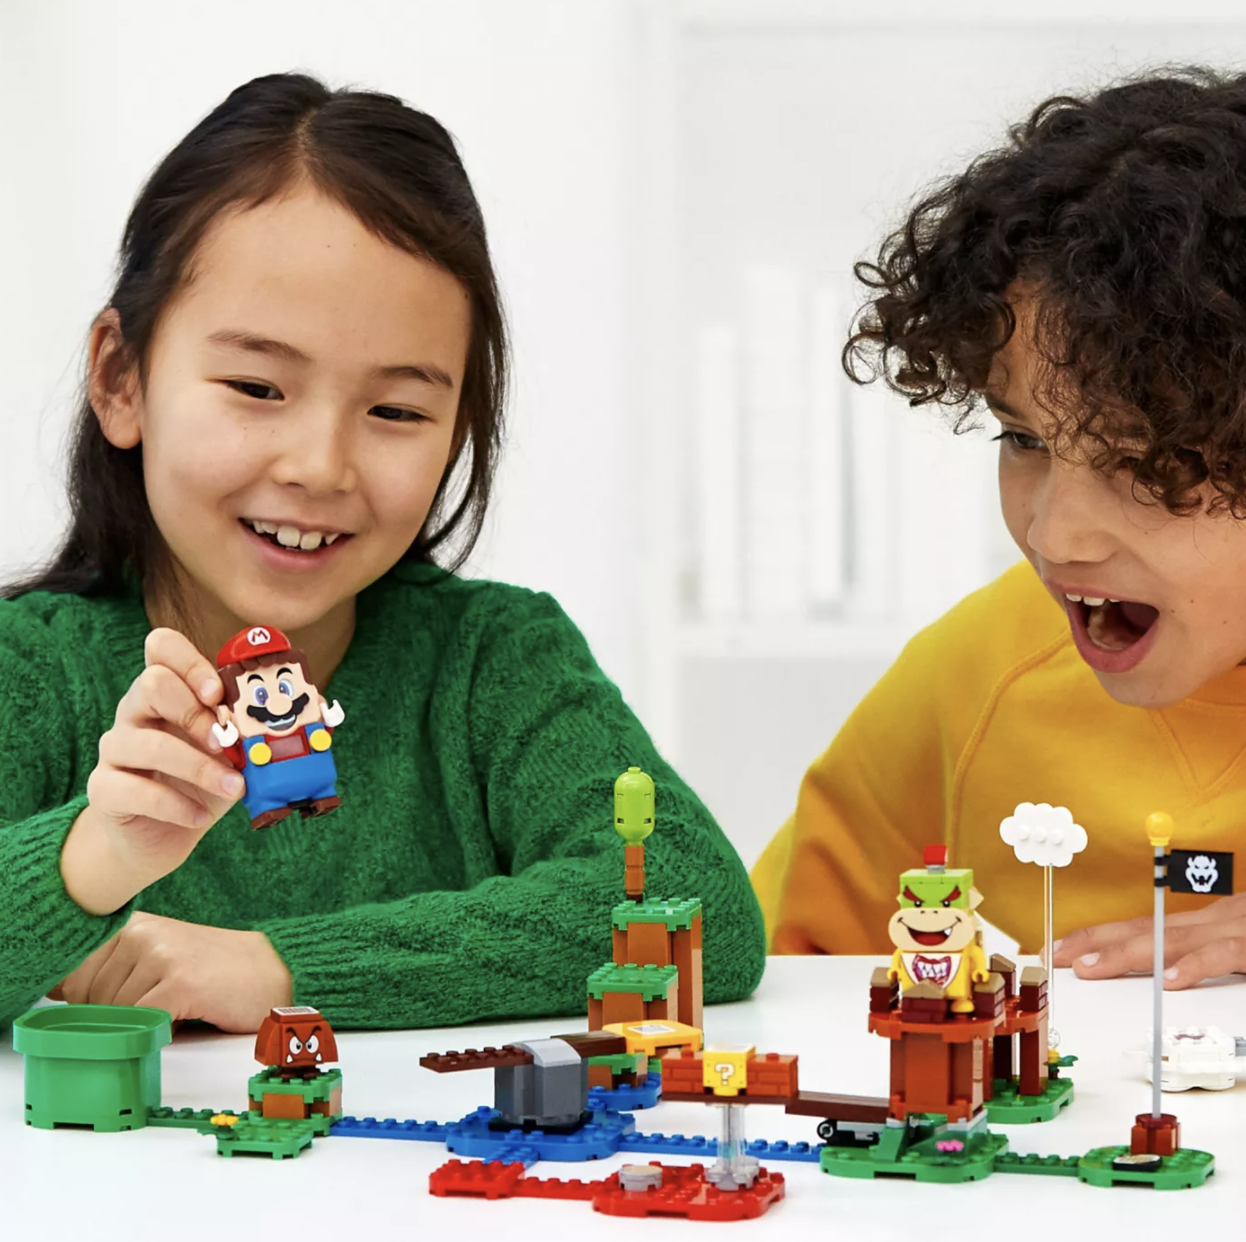 Two children playing with a Super Mario Lego set